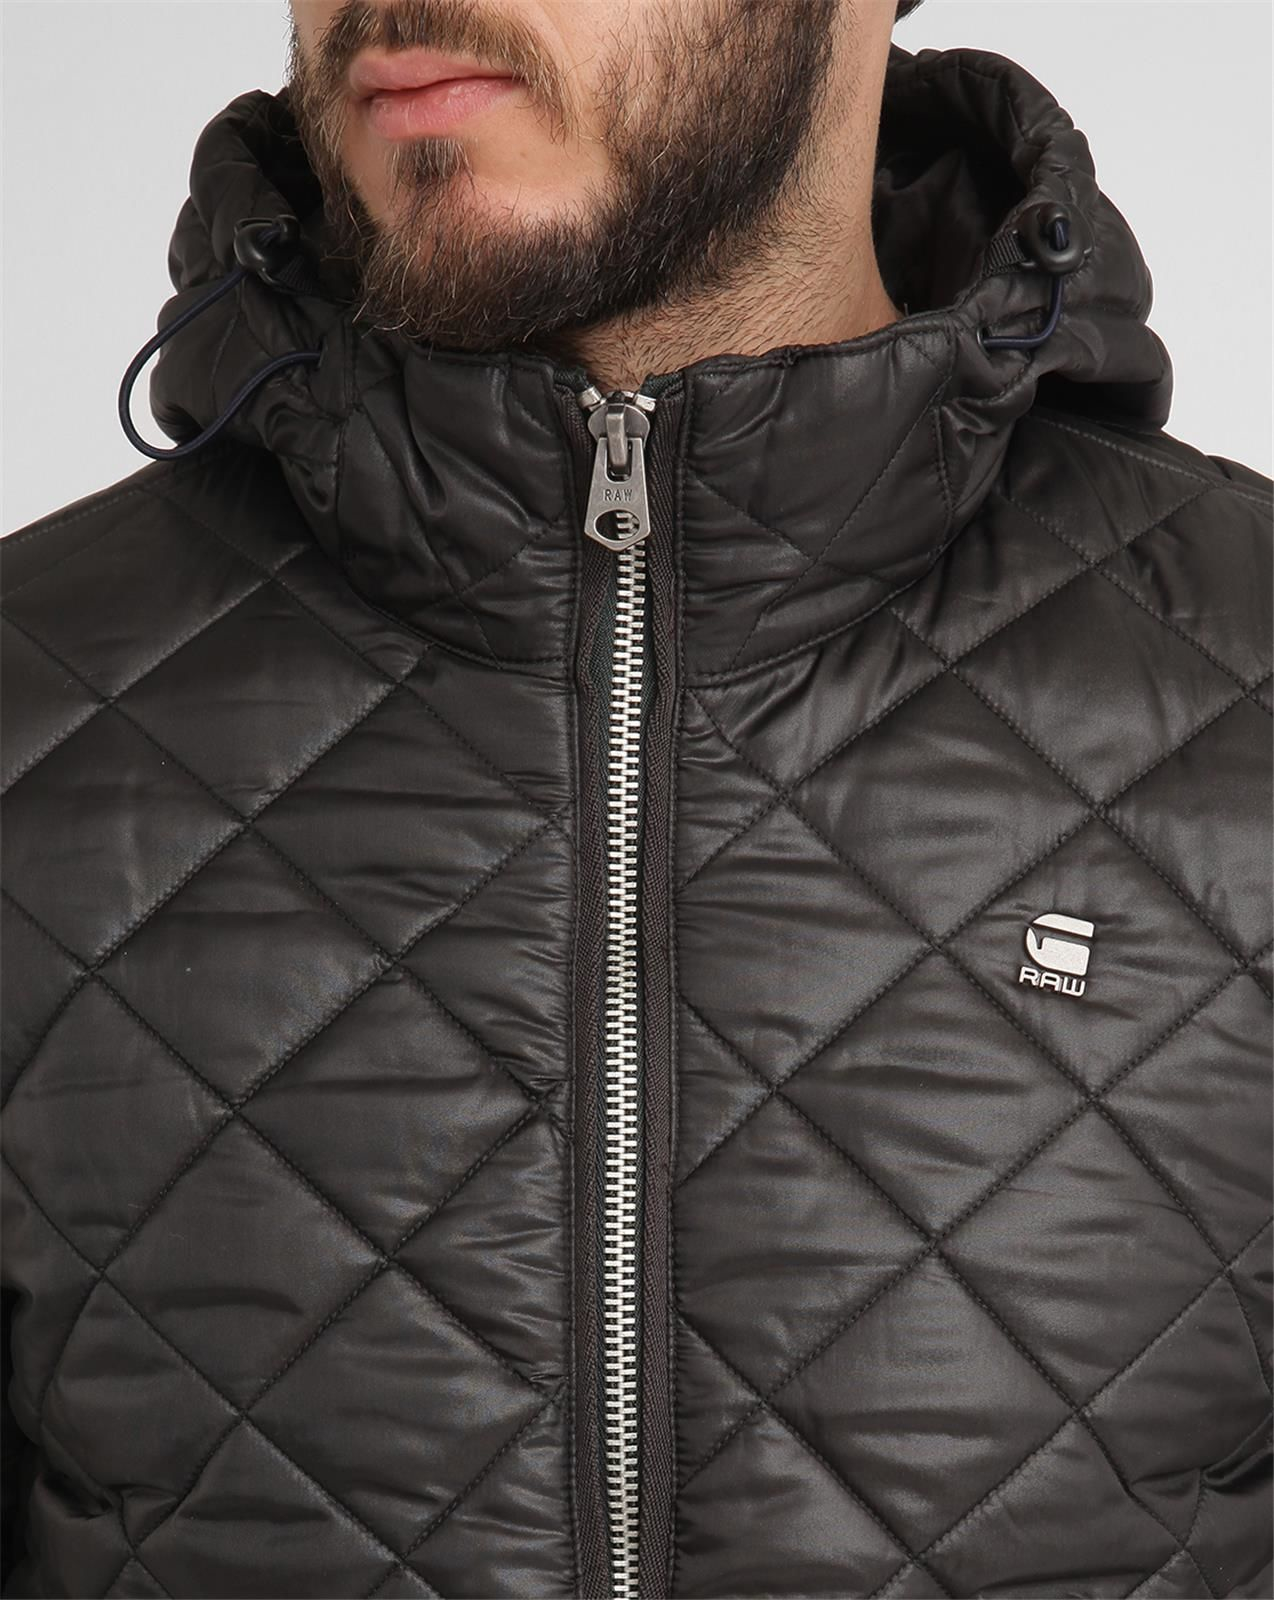 g star raw black meefic quilted hhd hooded down jacket in black for men lyst. Black Bedroom Furniture Sets. Home Design Ideas